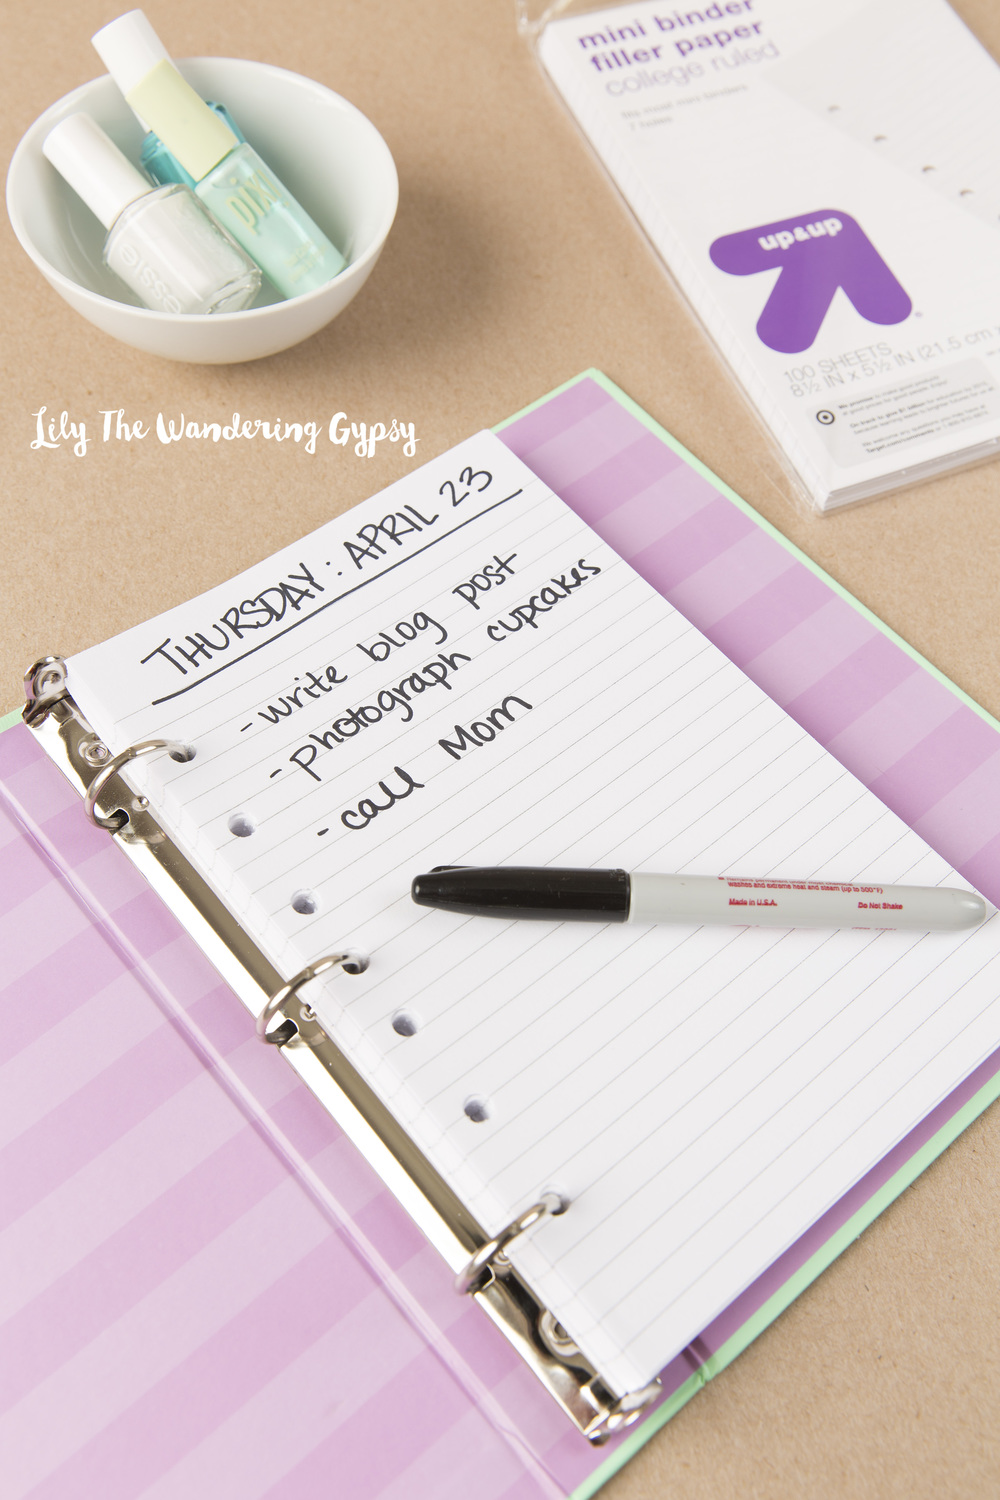 Diy Daily Planner Tutorial For Under 10 00 Lily The